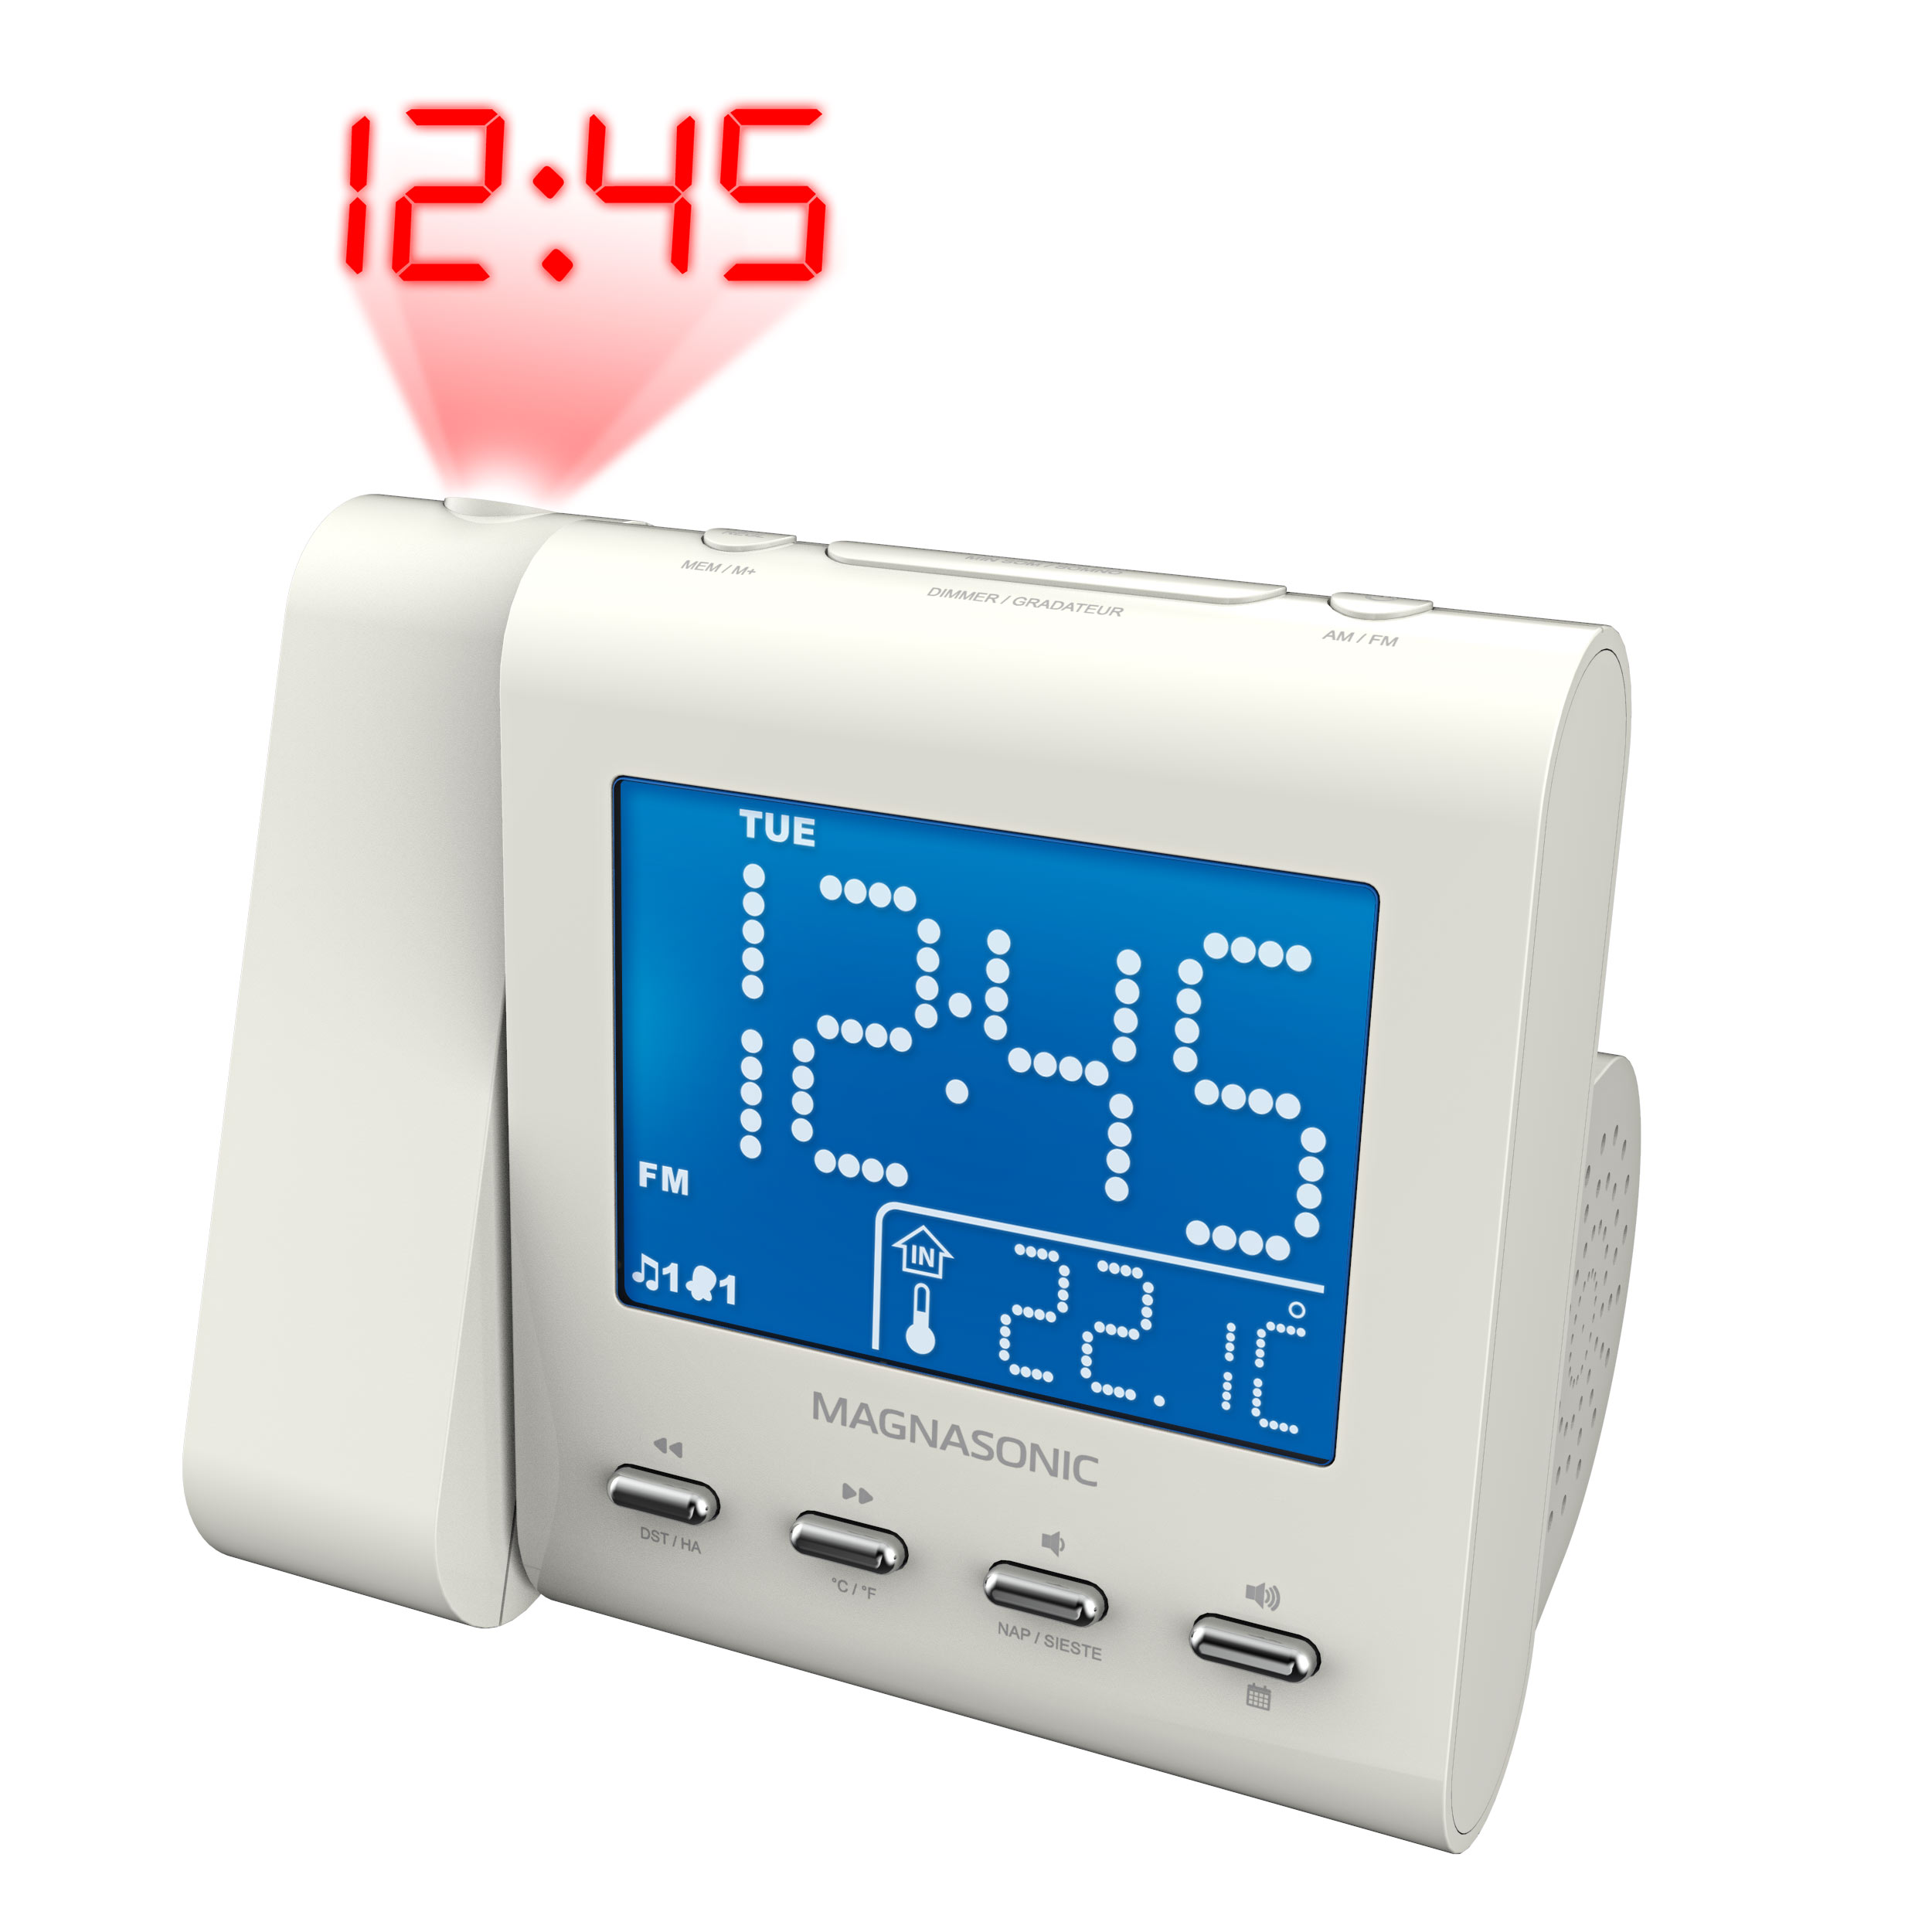 Magnasonic Projection Alarm Clock with AM/FM Radio, Battery Backup, Auto Time Set, Dual Alarm, Nap/Sleep Timer, Indoor Temperature/ Date Display with Dimming & 3.5mm Audio Input – White (EAAC601W)